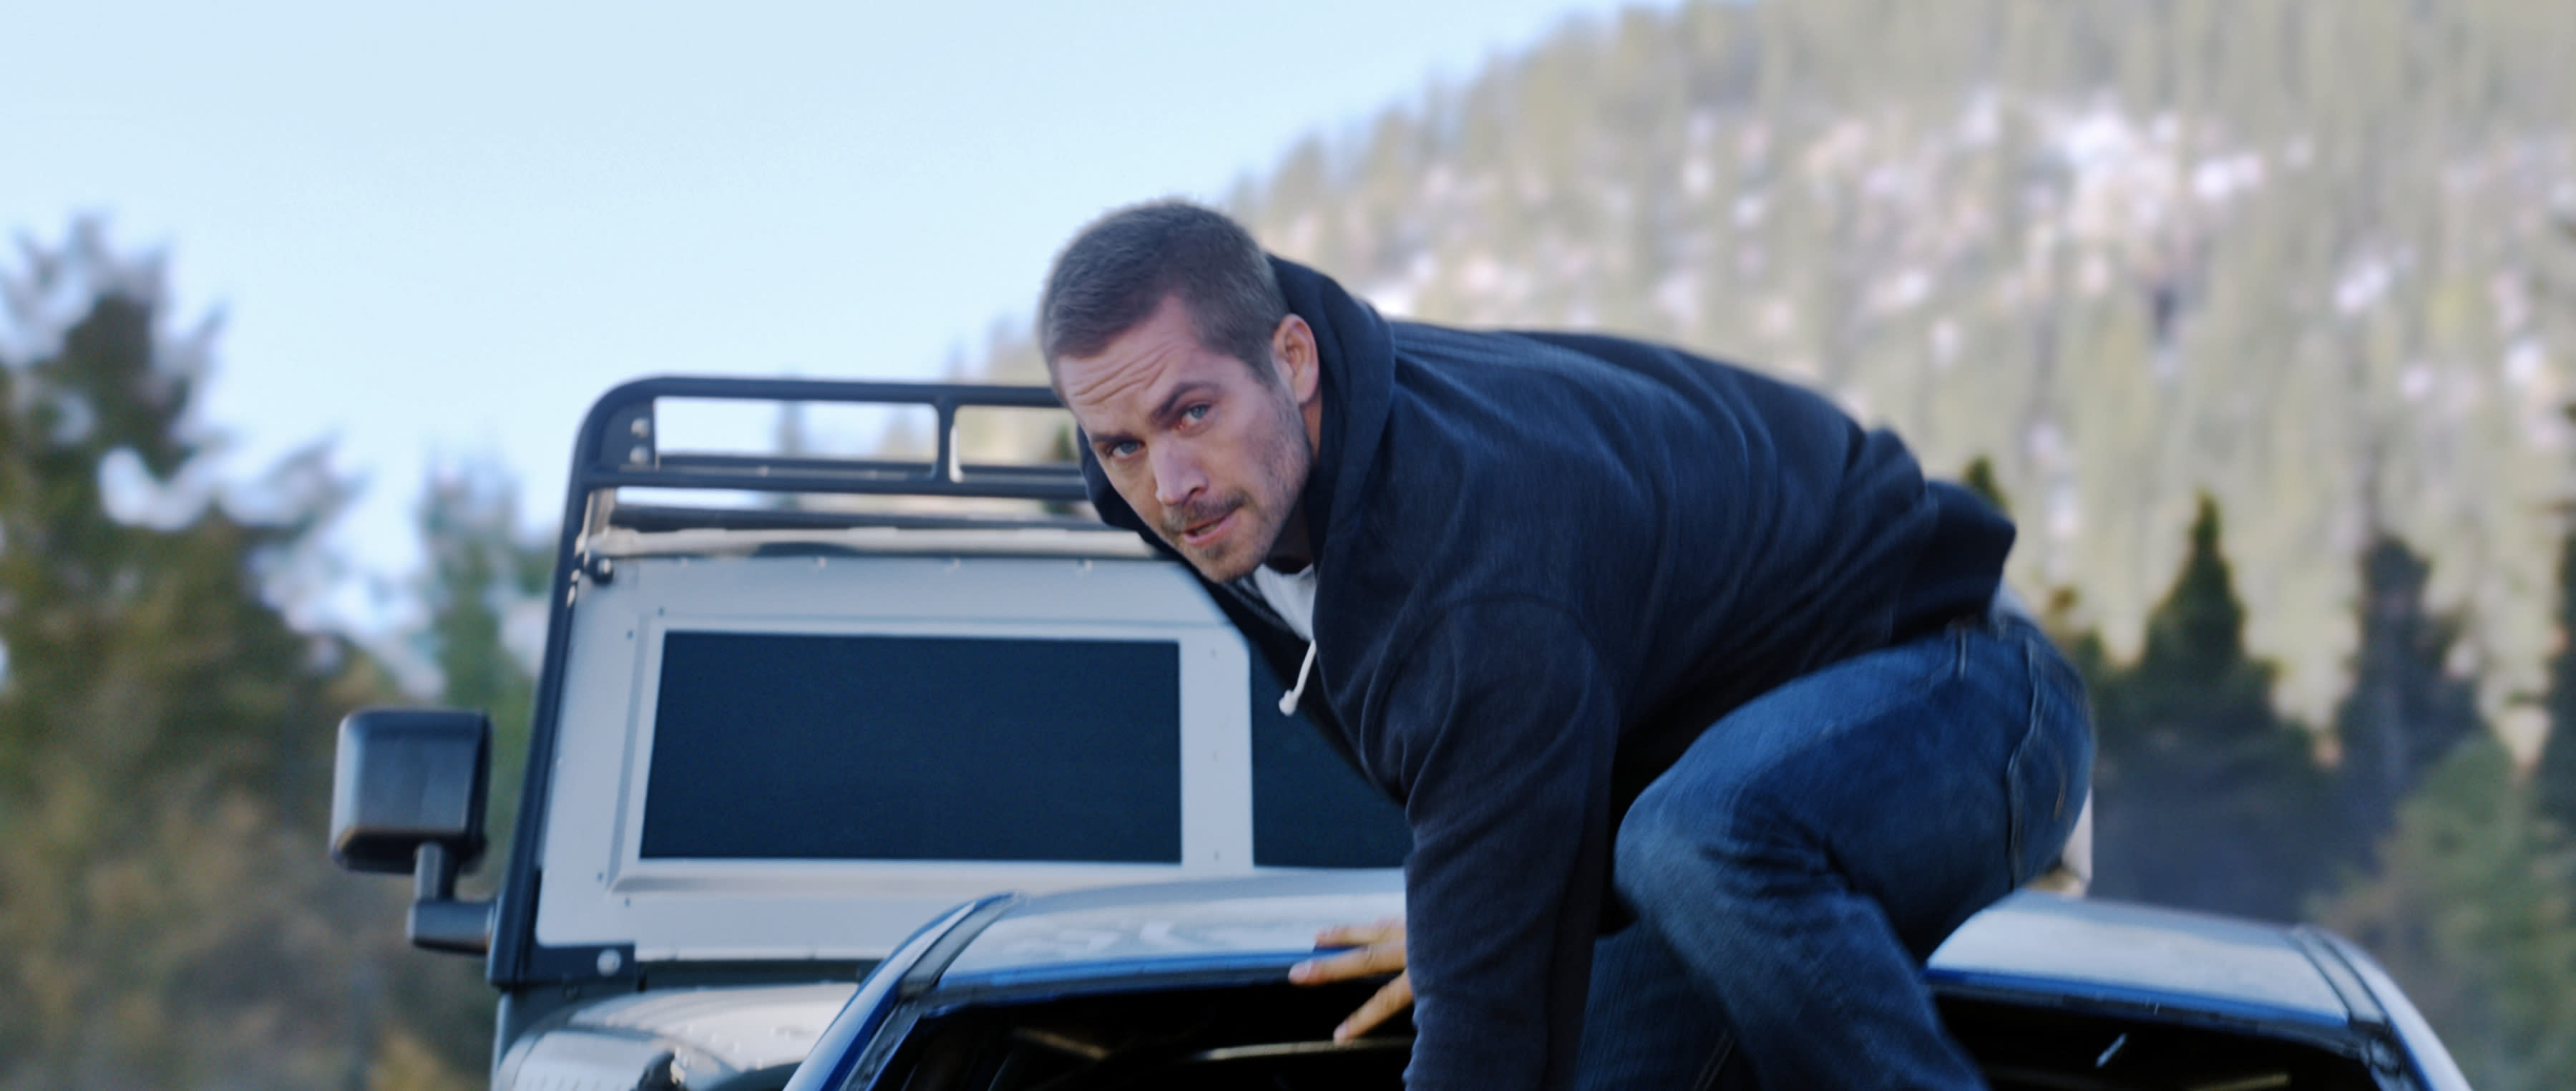 'Furious 7' holds on to box office; 'Age of Ultron' looms